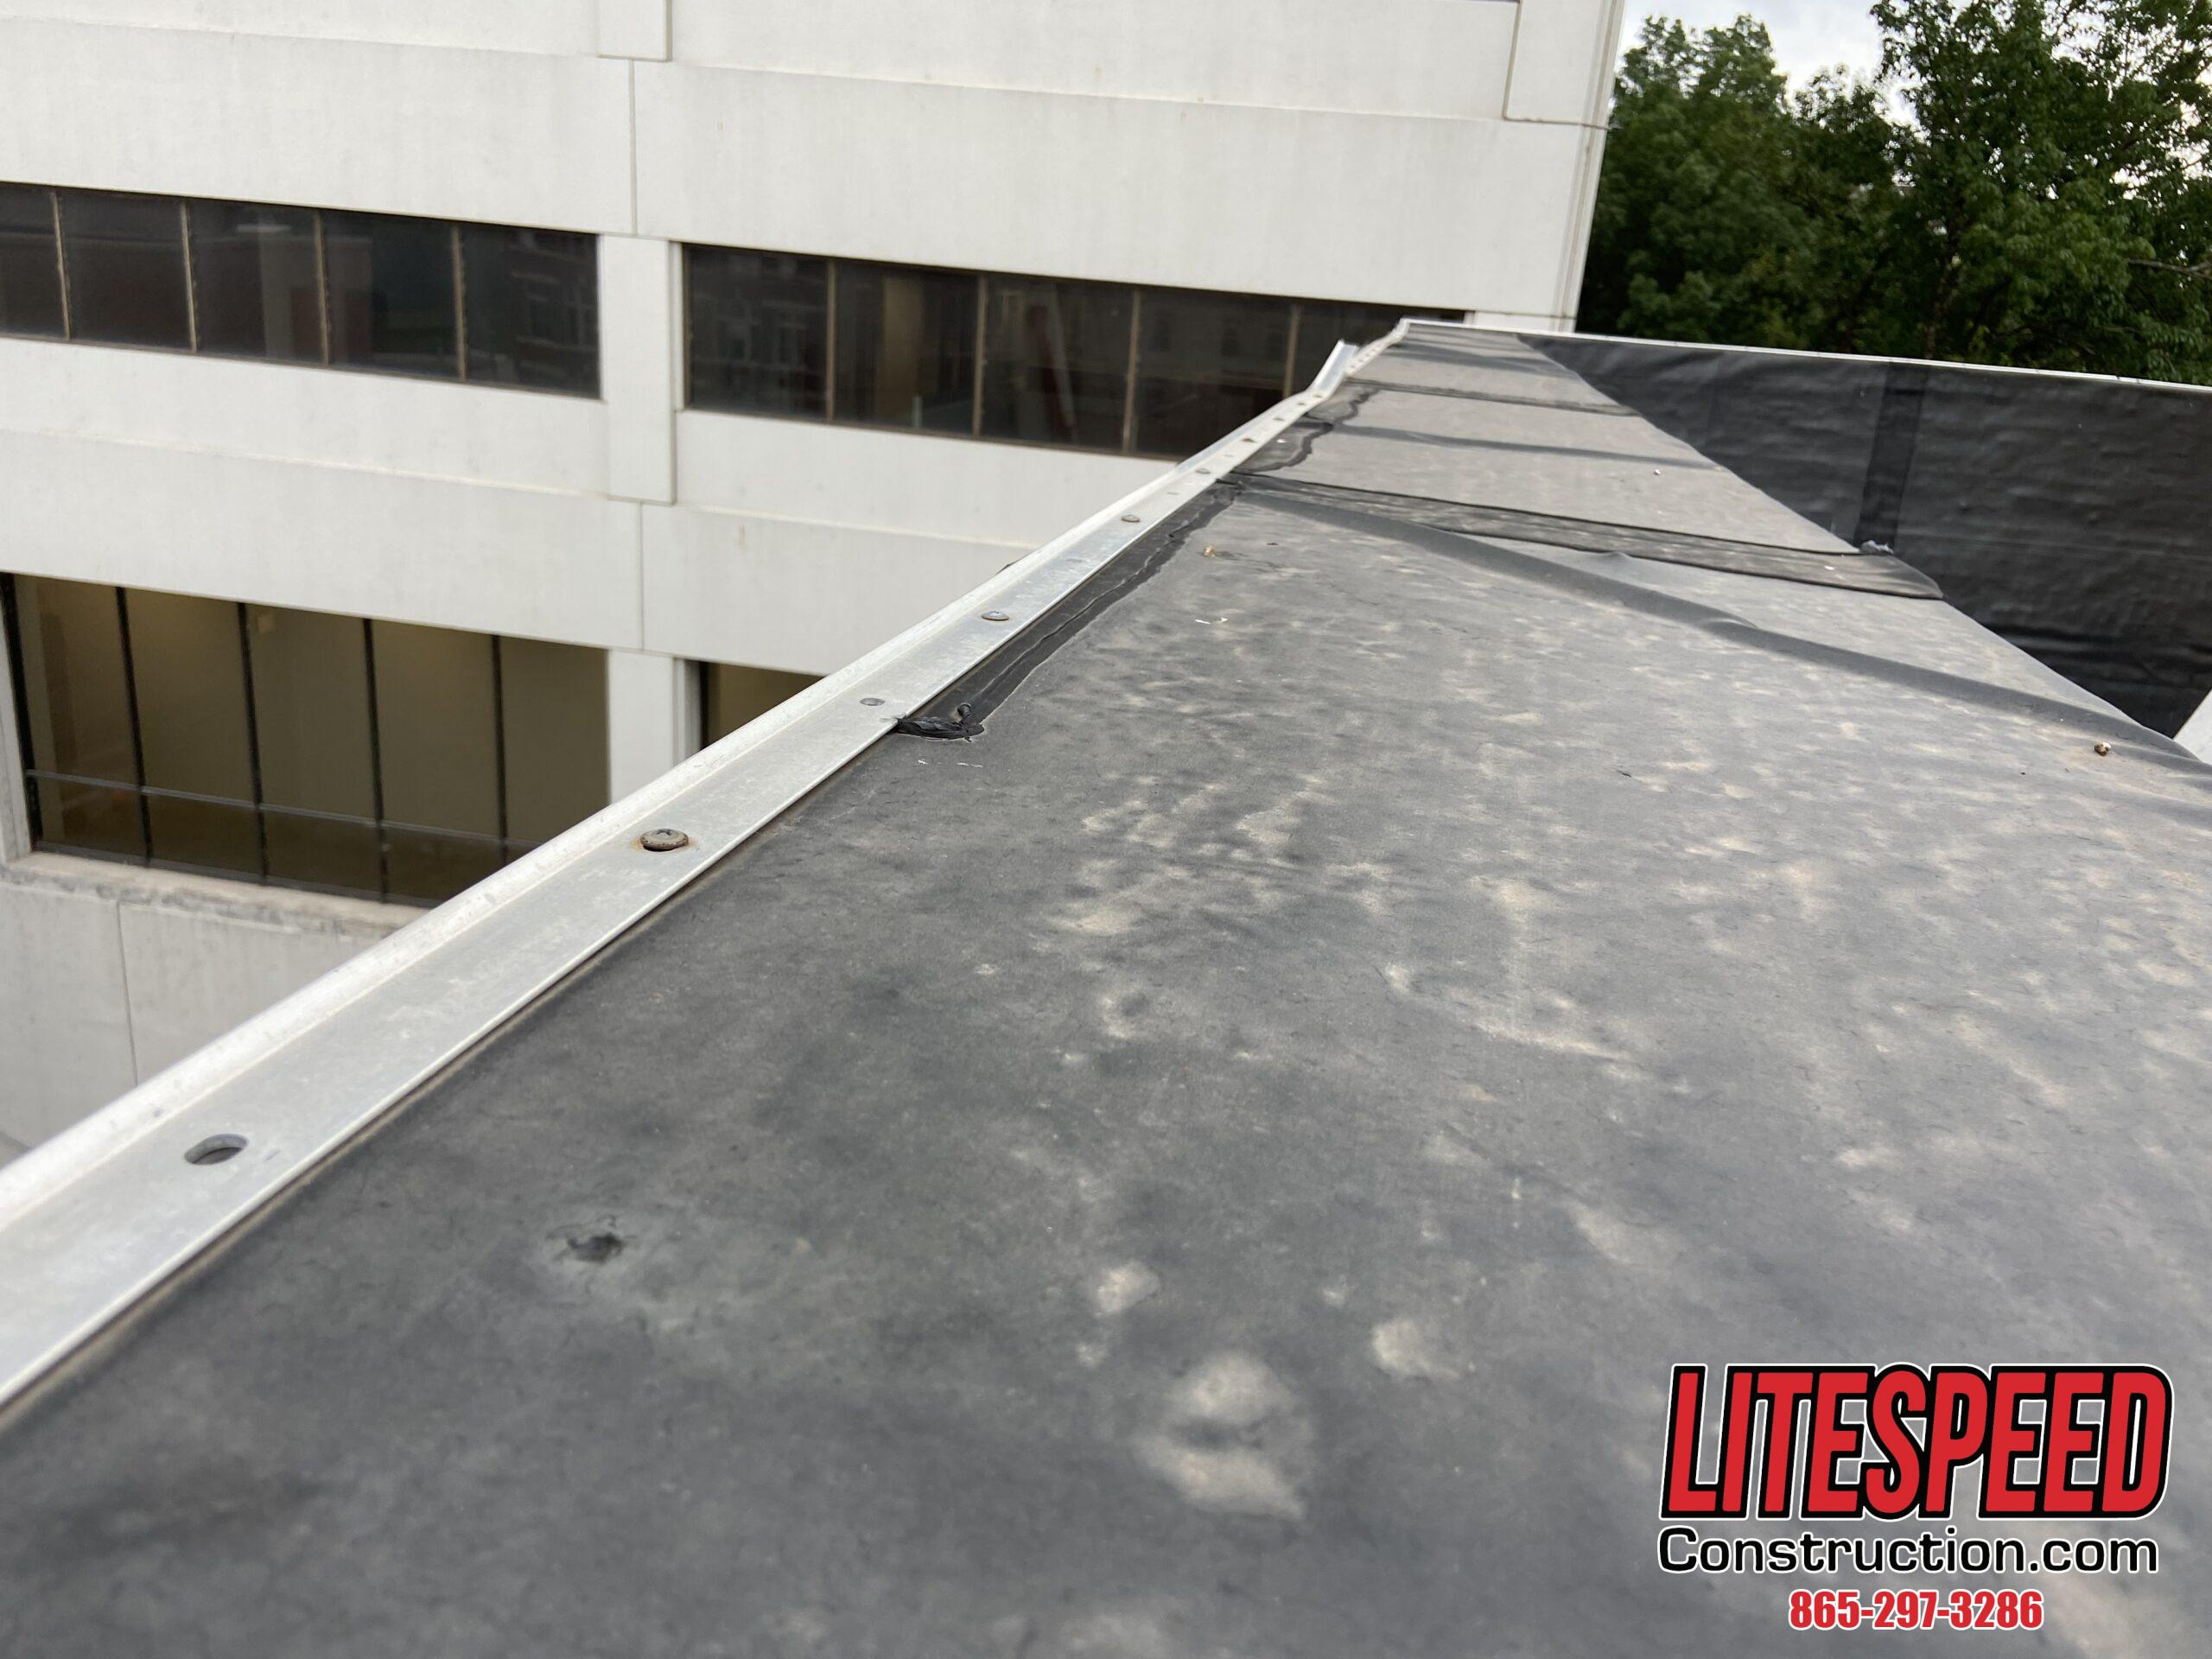 Termination Bar On Commercial Roof is Misinstalled